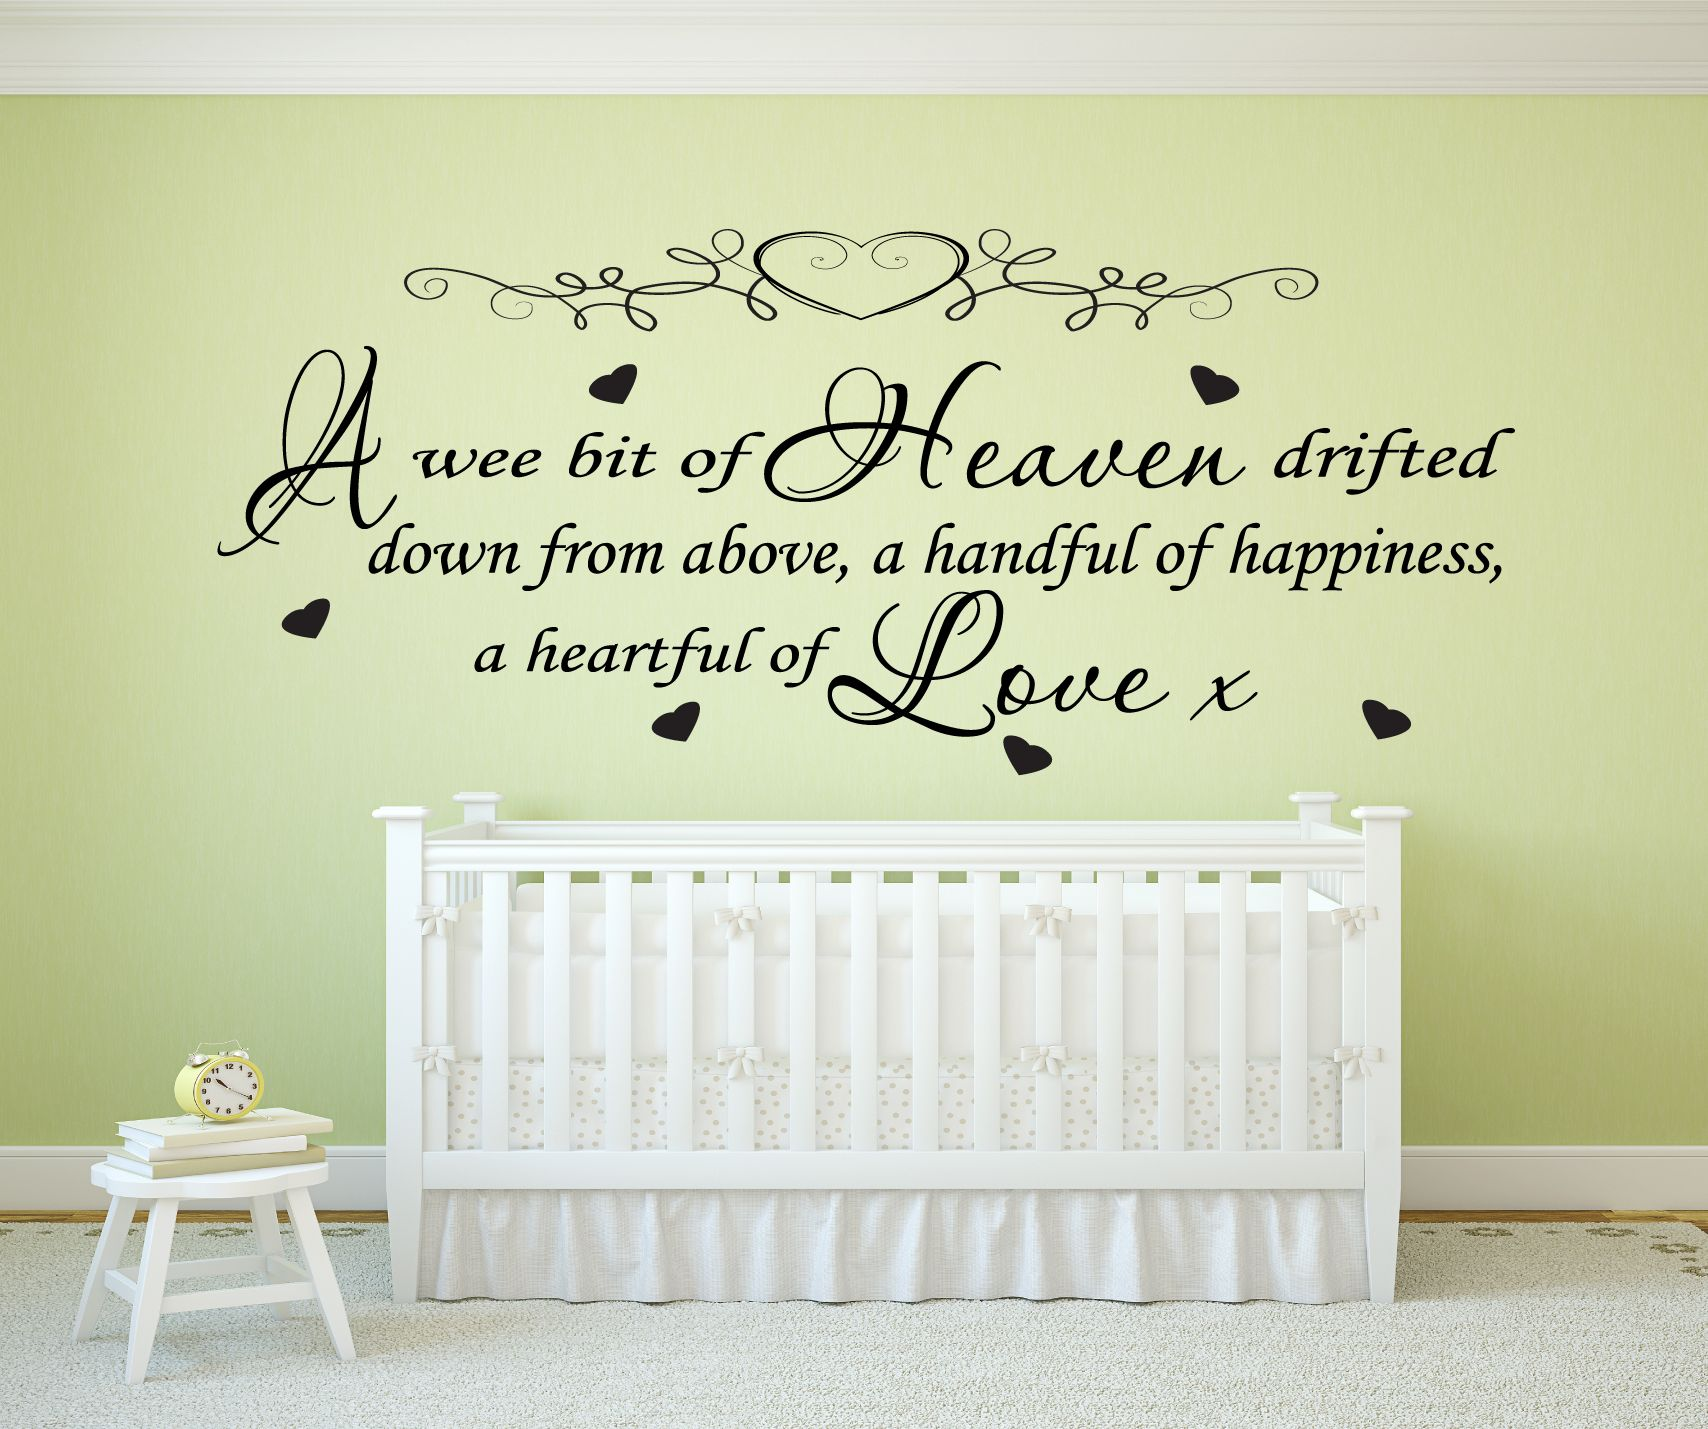 Vinyl Wall Art Quotes For Nursery : Nursery wall art quotes quotesgram